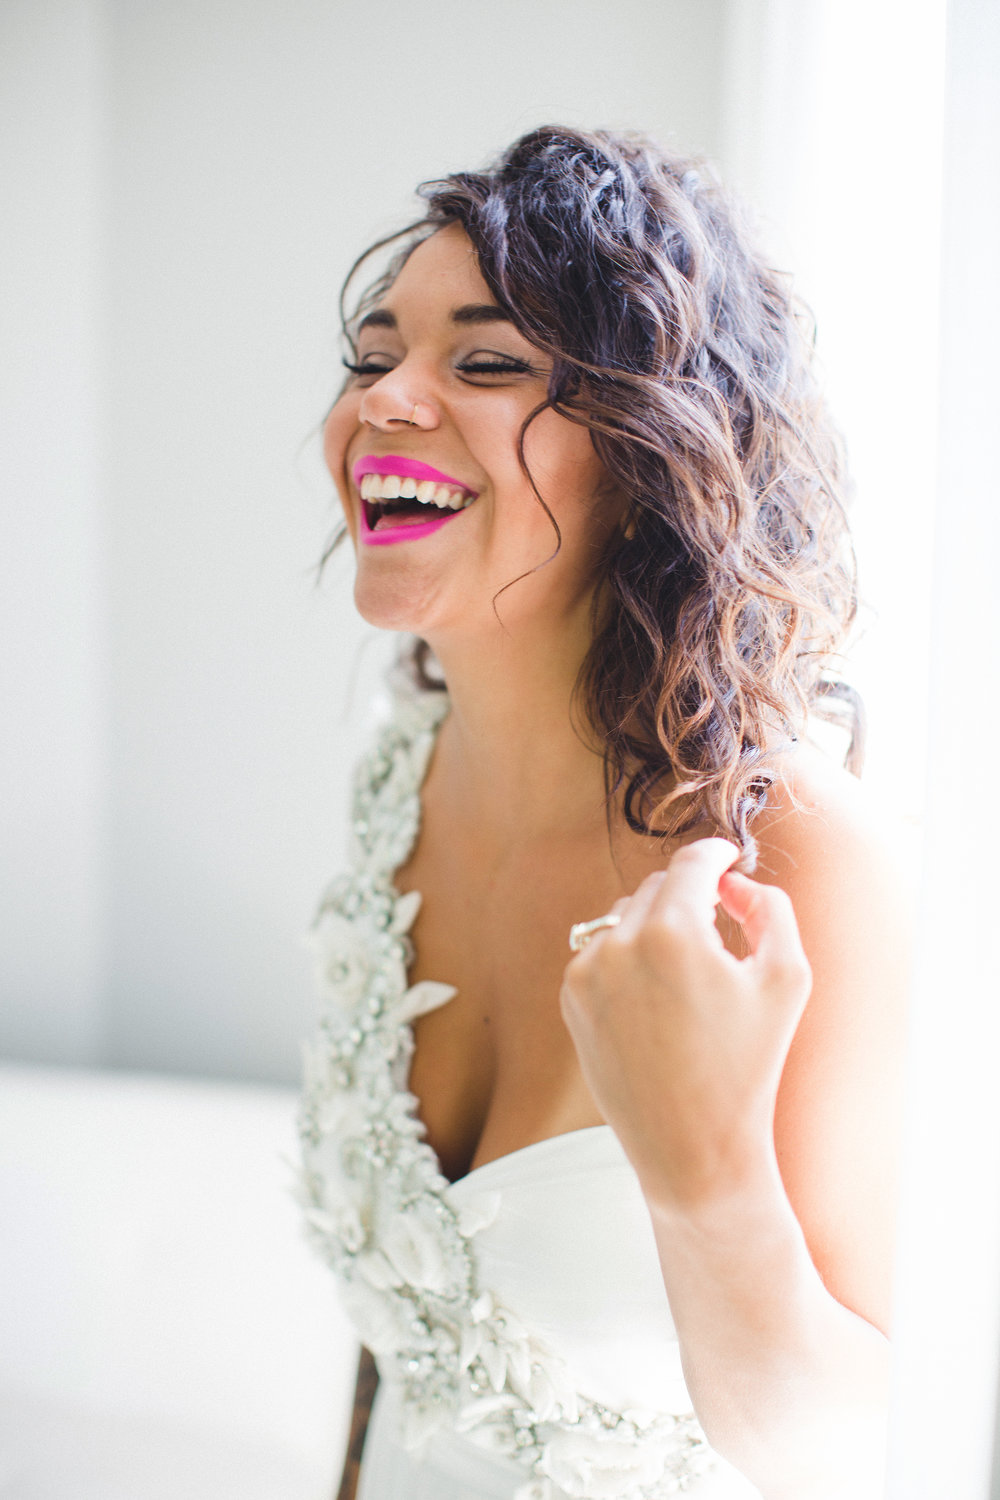 SmittenKickstarter-tash-anna-campbell-one-shoulder-wedding-dress-bling-wedding-dress-savannah-bridal-boutique-savannah-wedding-dresses-savannah-bridal-shop-izzy-hudgins-photography-ivory-and-beau.jpg